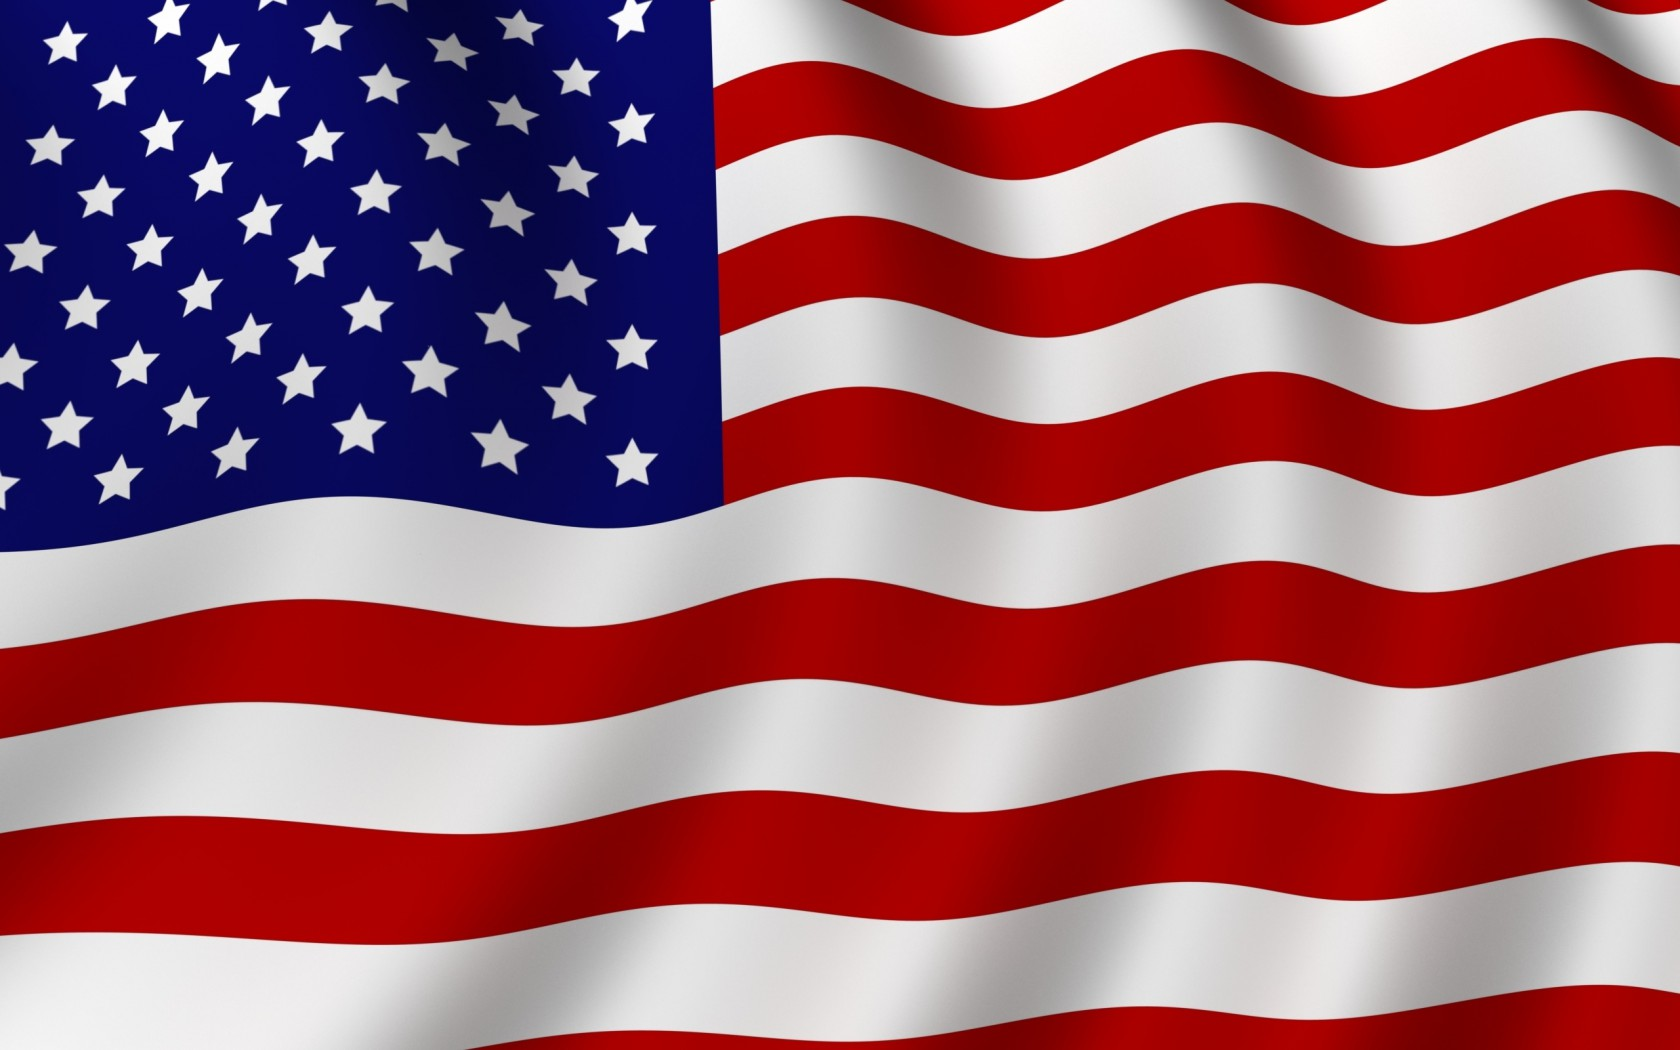 waving american flag wallpaper free